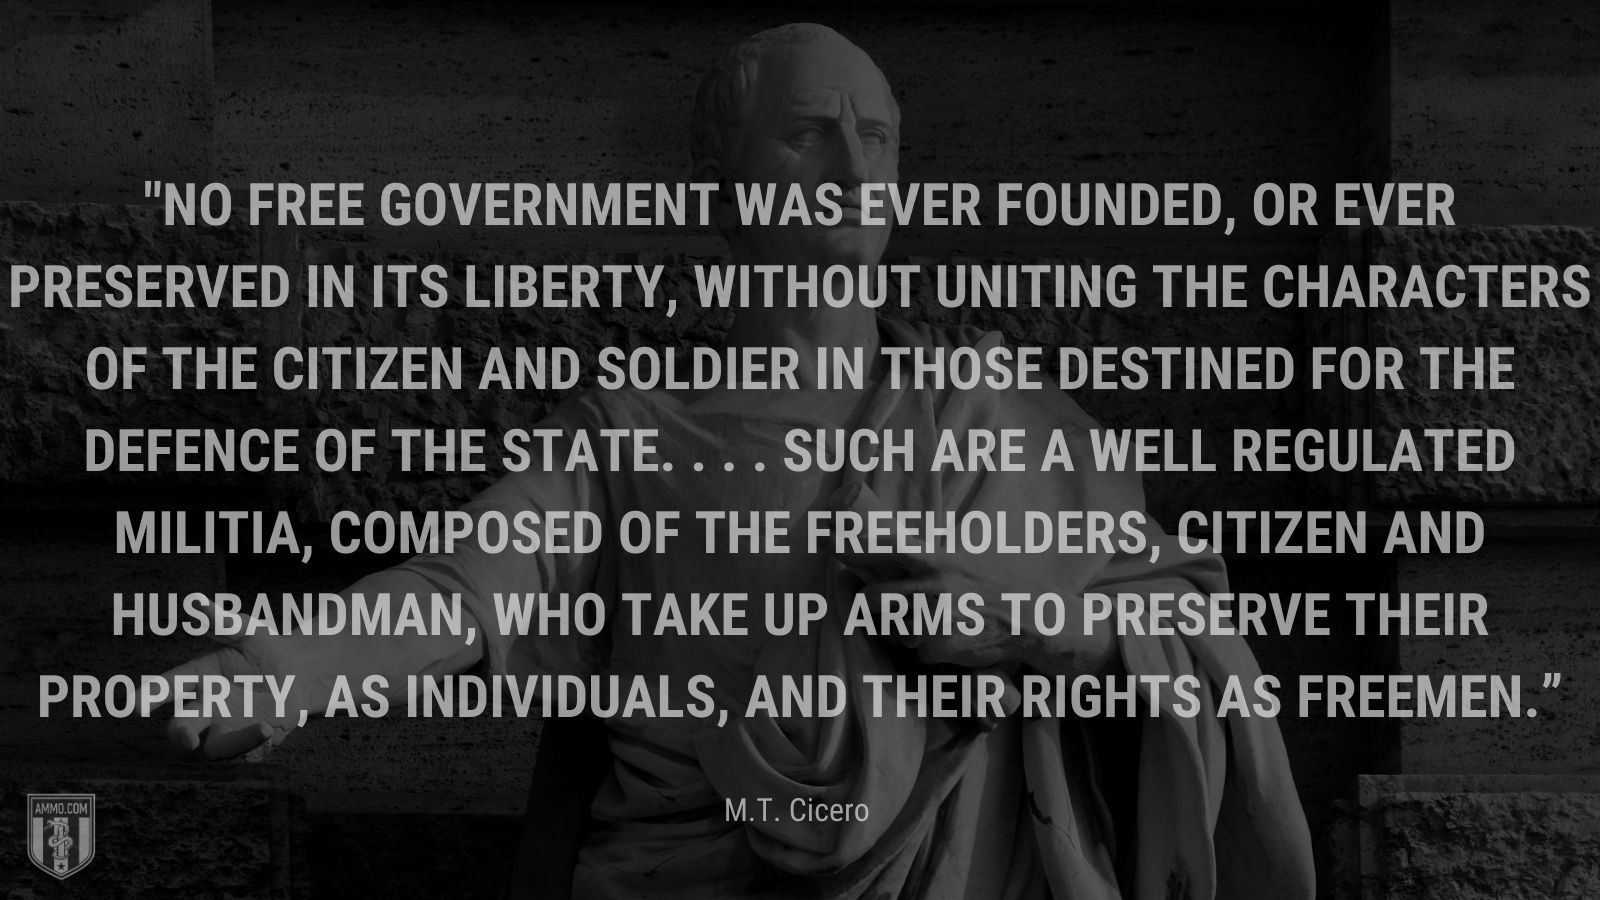 """""""No free government was ever founded, or ever preserved in its liberty, without uniting the characters of the citizen and soldier in those destined for the defence of the state. . . . Such are a well regulated militia, composed of the freeholders, citizen and husbandman, who take up arms to preserve their property, as individuals, and their rights as freemen."""" - M.T. Cicero"""